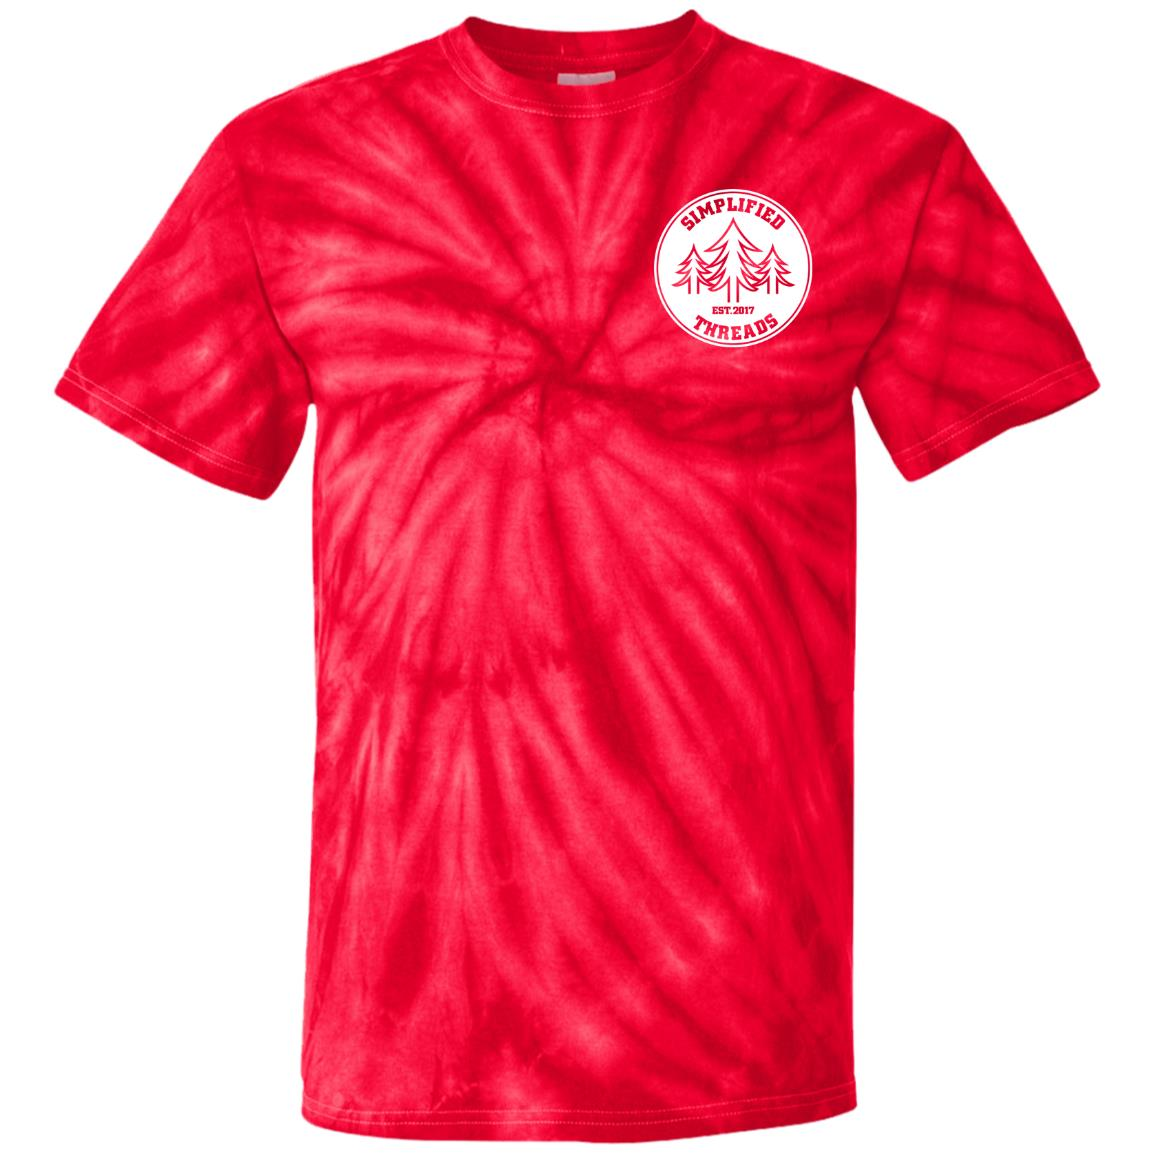 Kids Small Dig Your Roots Logo Tie Dye Tee